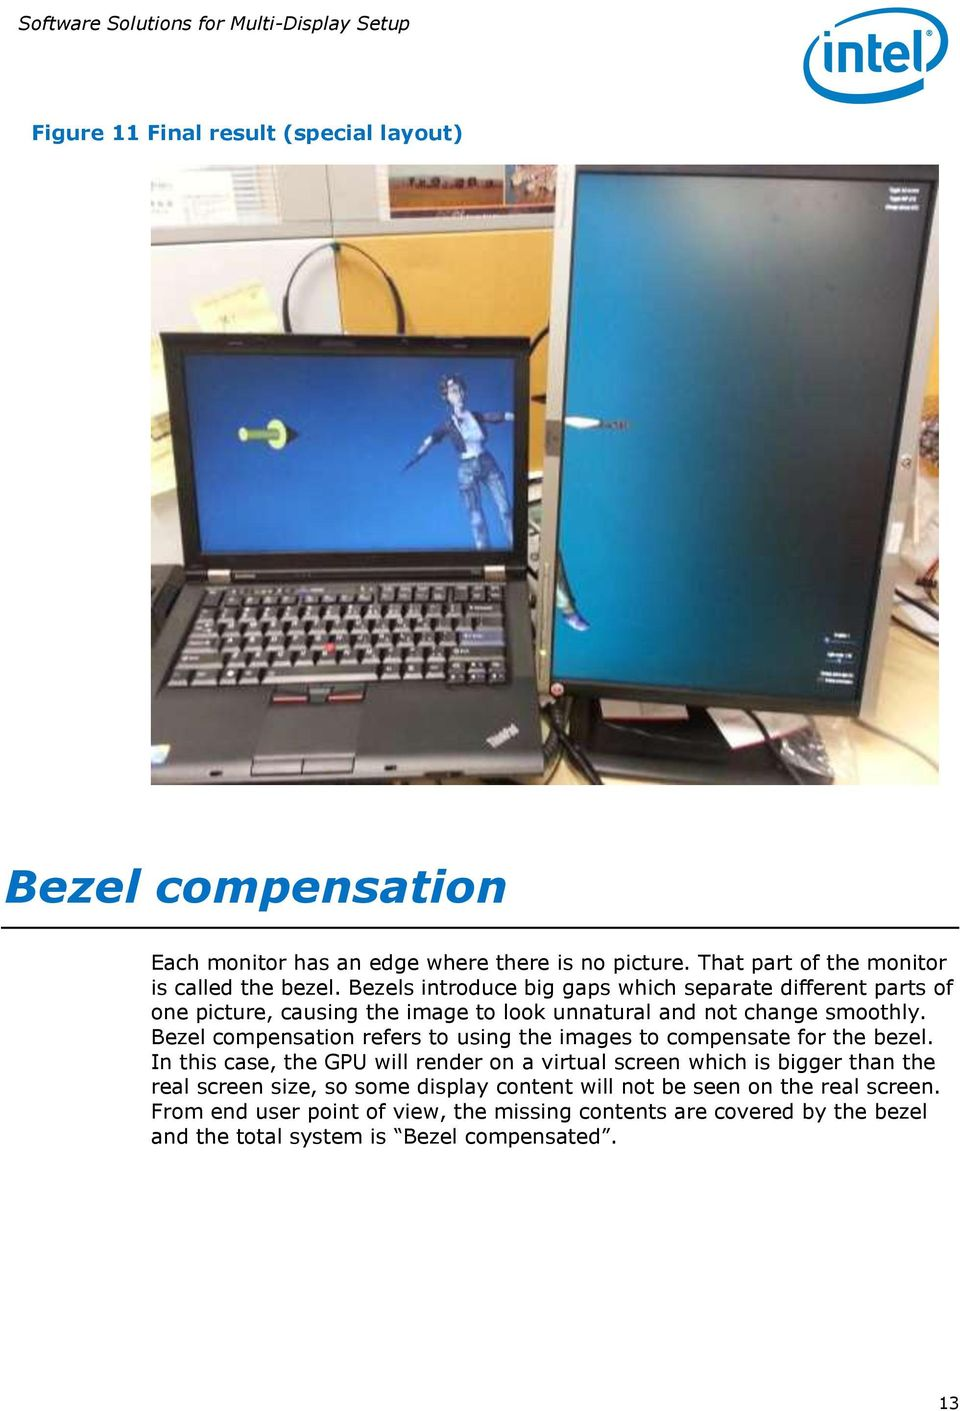 Bezel compensation refers to using the images to compensate for the bezel.